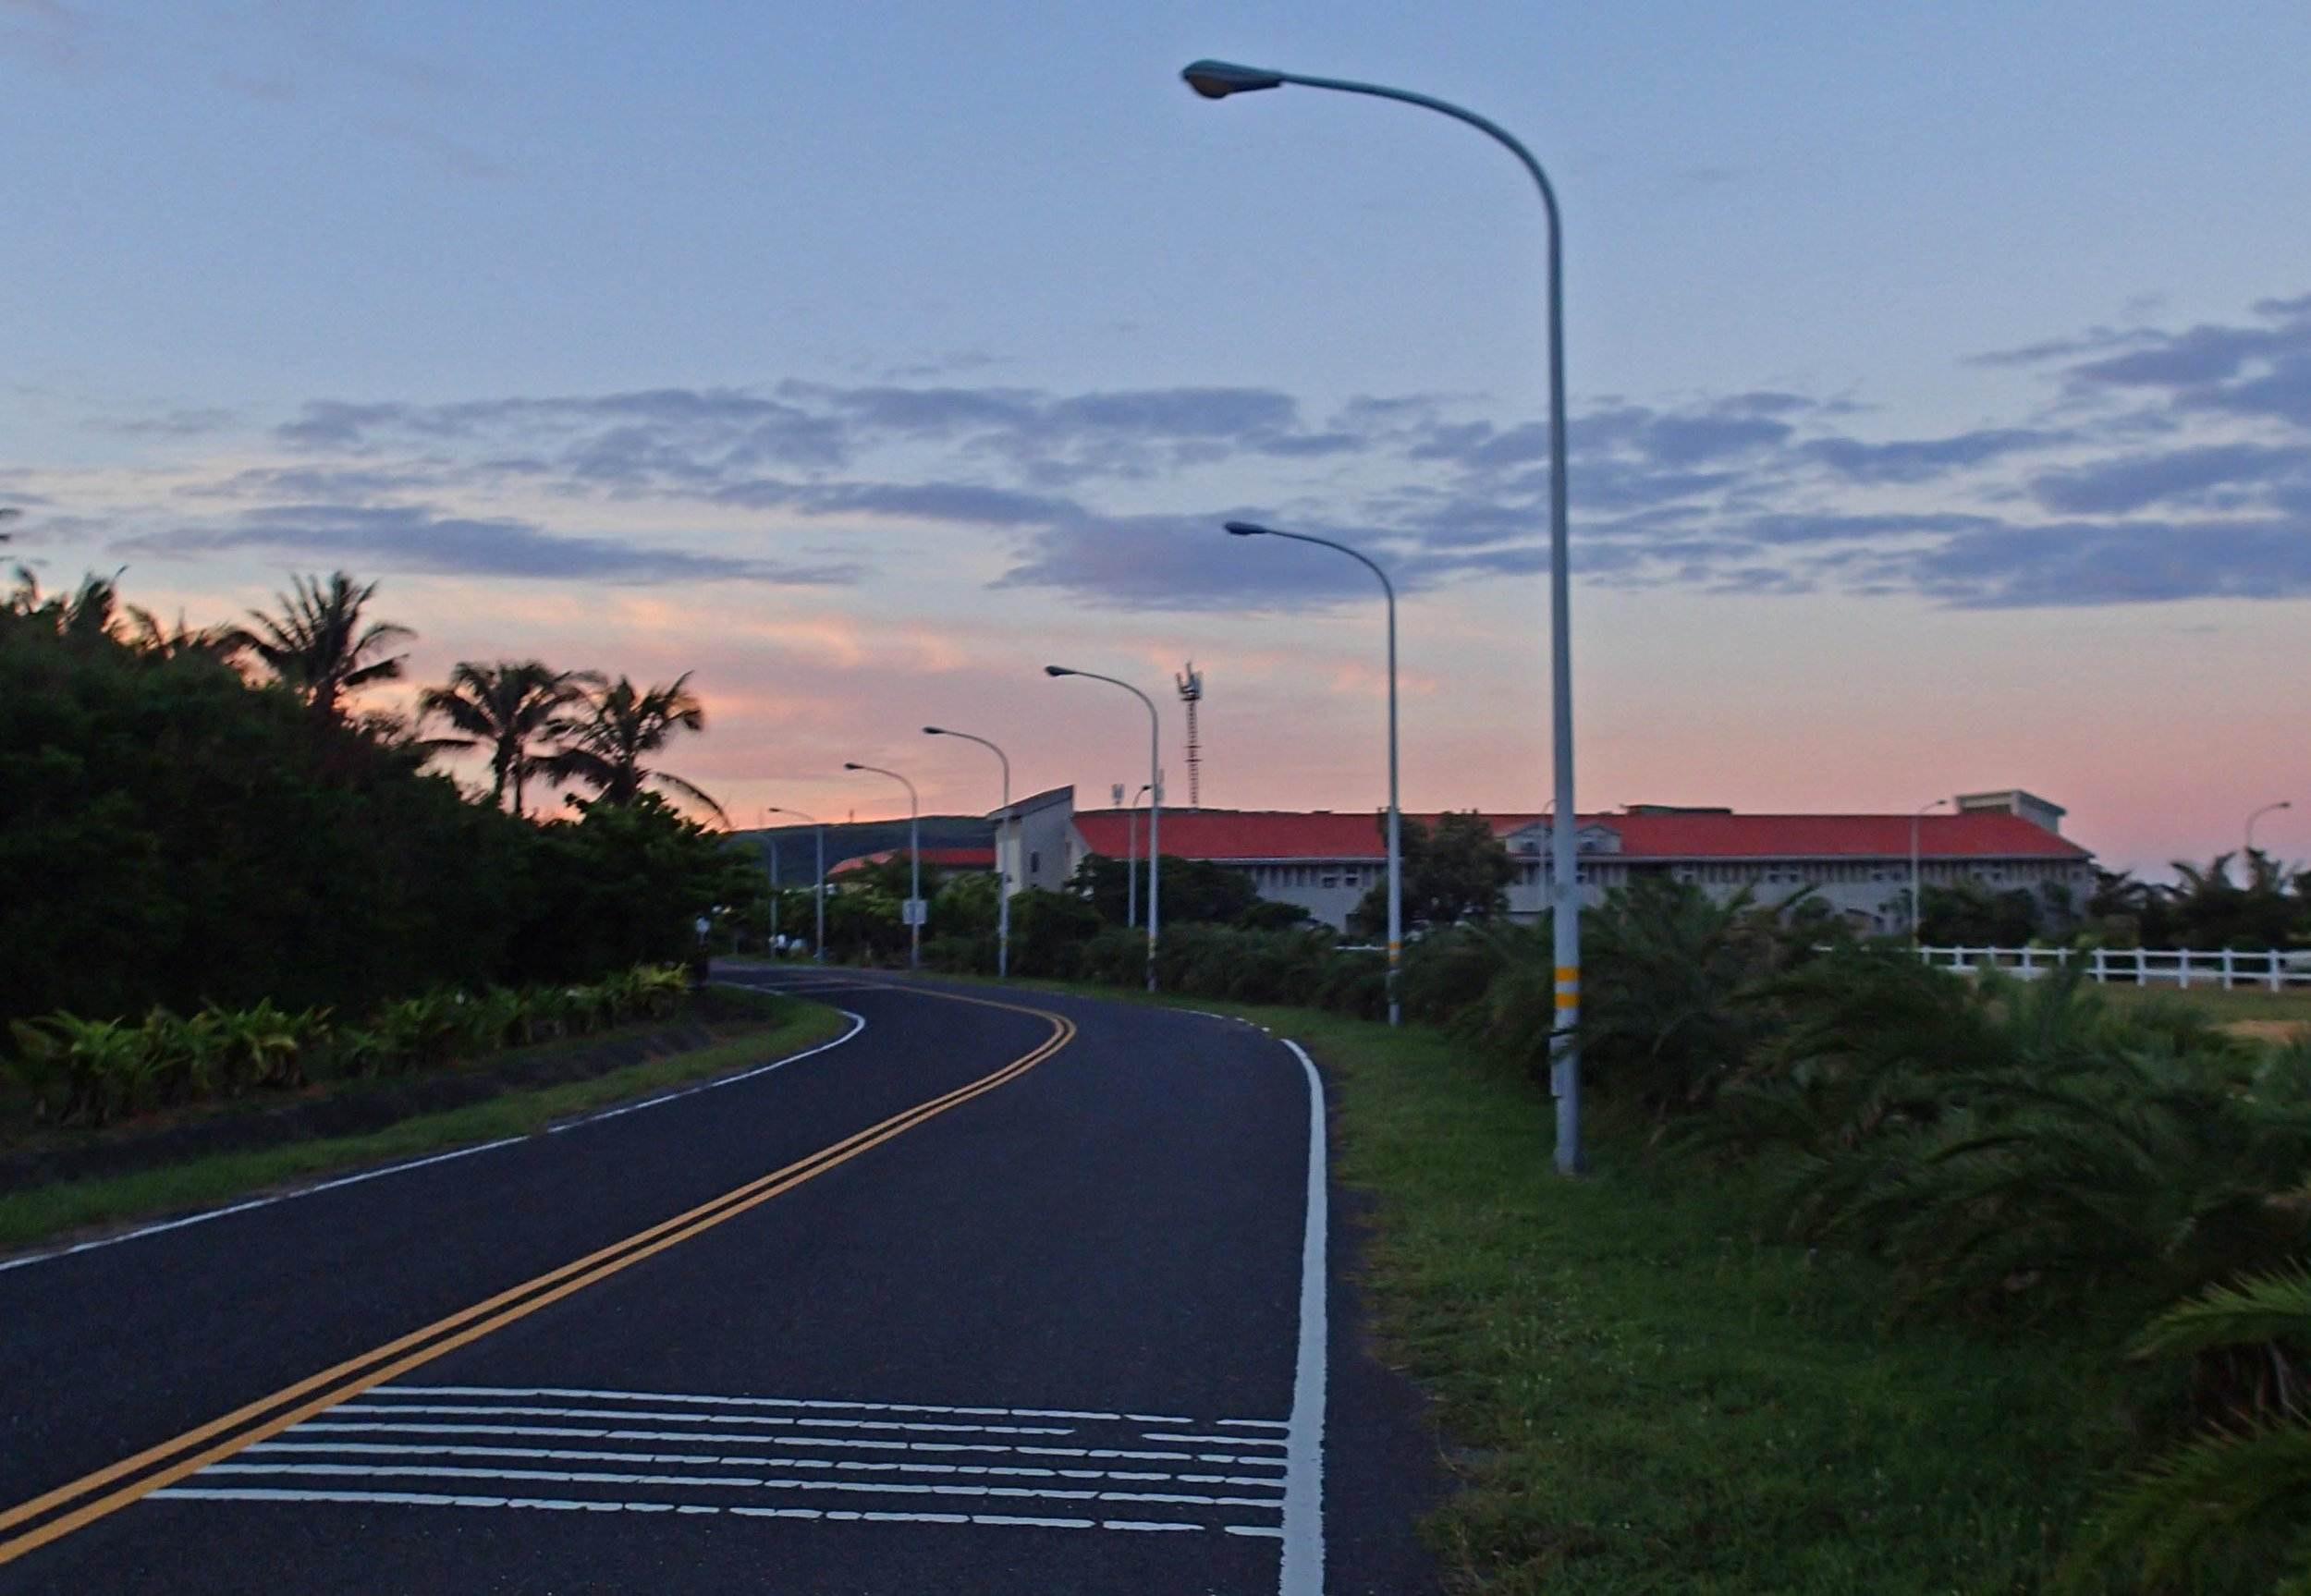 sunrise at NMMBA.jpg